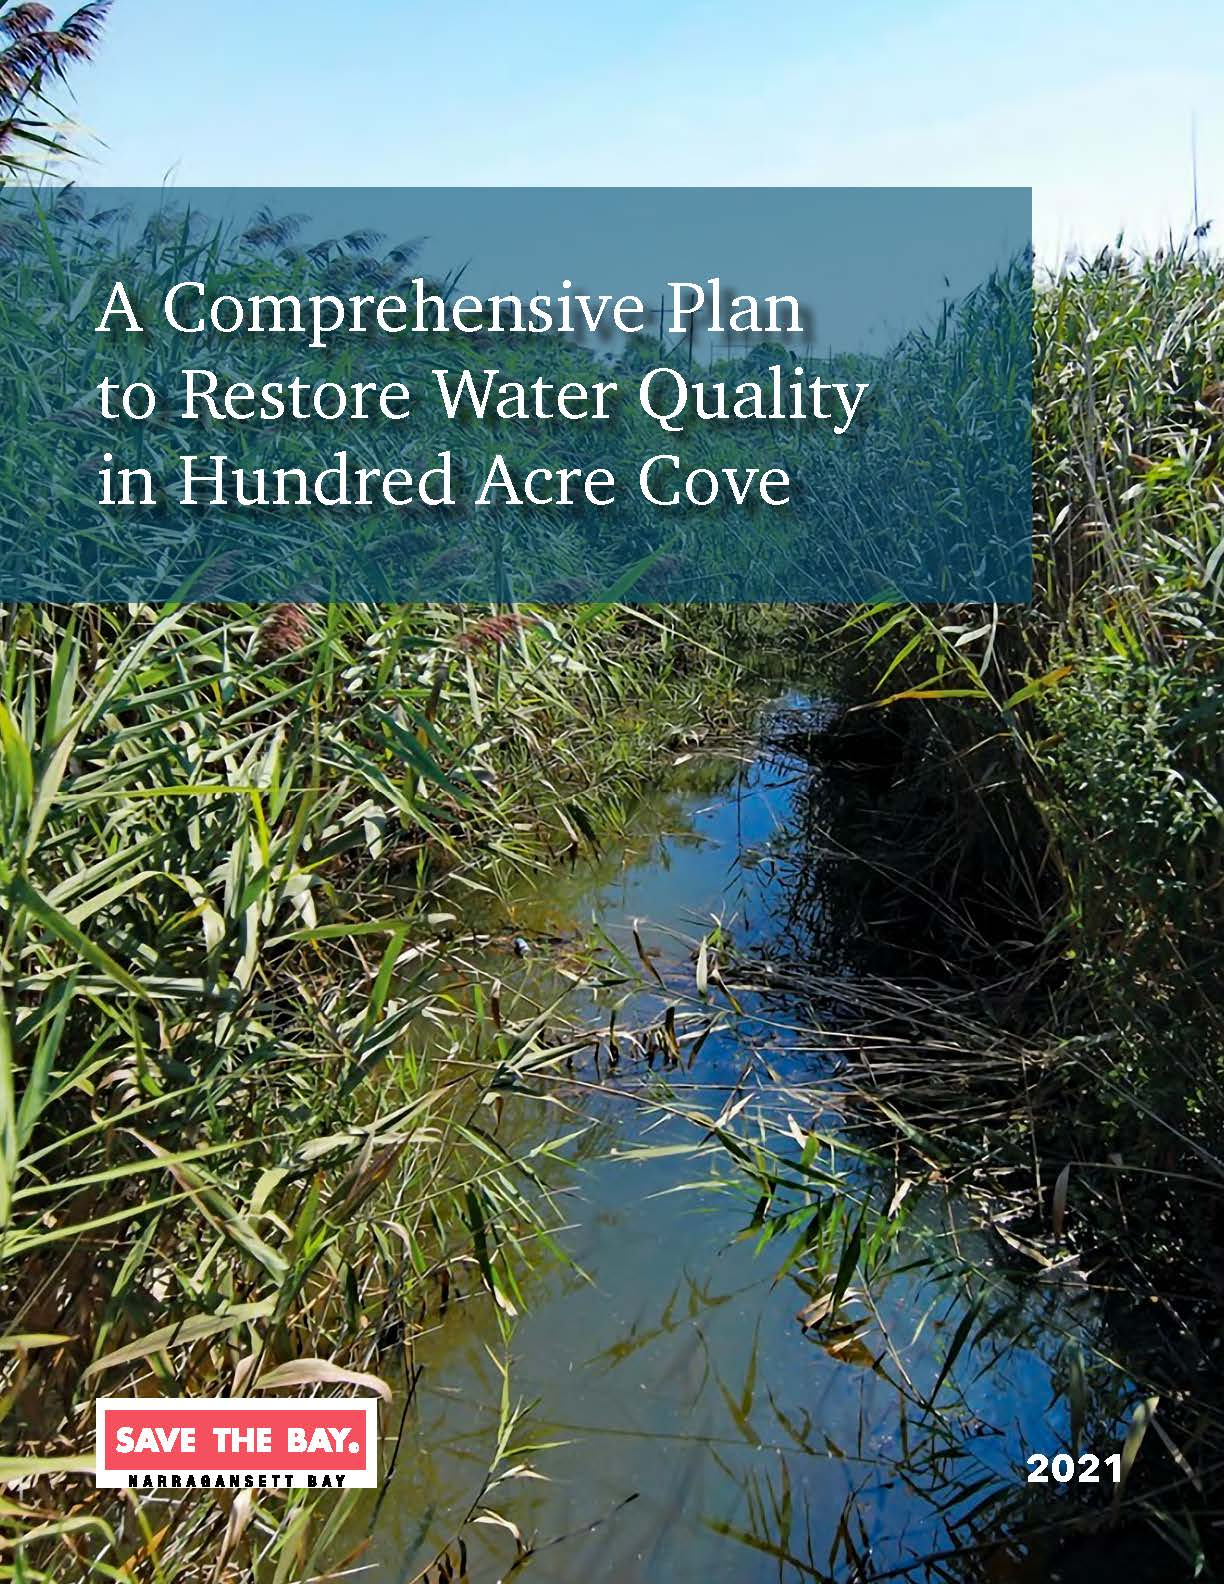 """A semi-transparent blue window sits in the upper left corner with white text reading, """"A Comprehensive Plan to Restore Qater Quality to Hundred Acre Cove."""" A background image featuring a narrow stream weaving its way through the reeds is prominent. The Save The Bay logo in the lower left corner, mirrors the publication date, """"2021"""" in the right."""